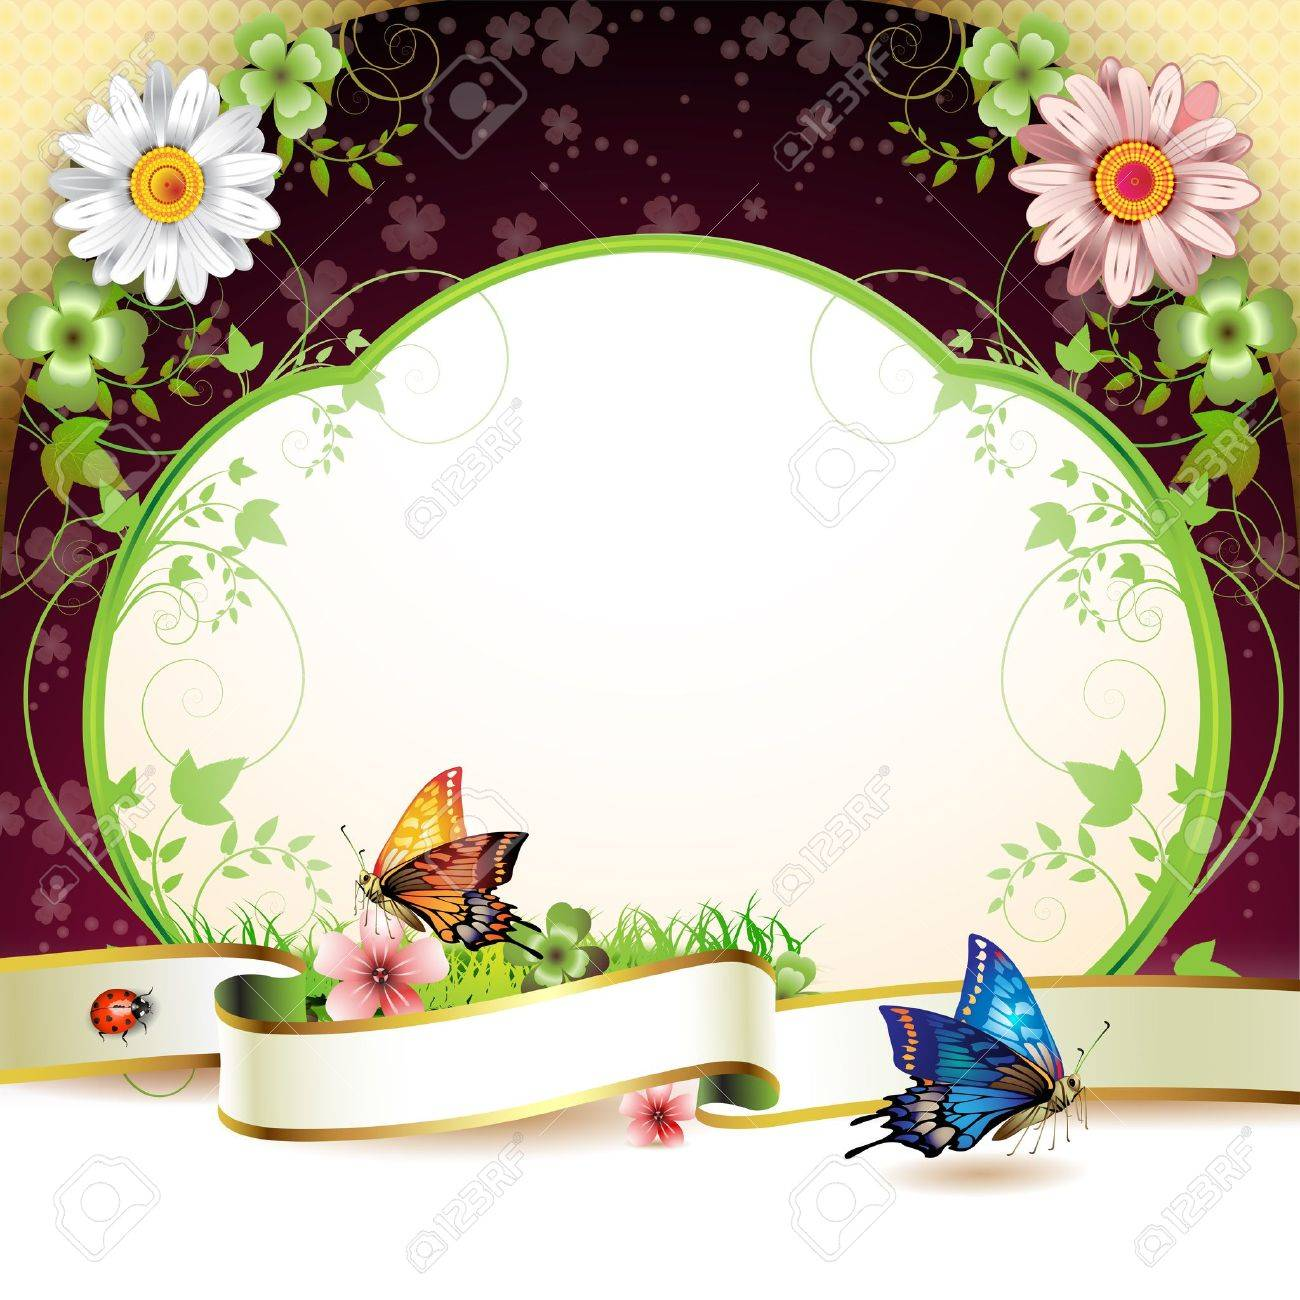 Banner with flowers and butterflies Stock Vector - 9504747